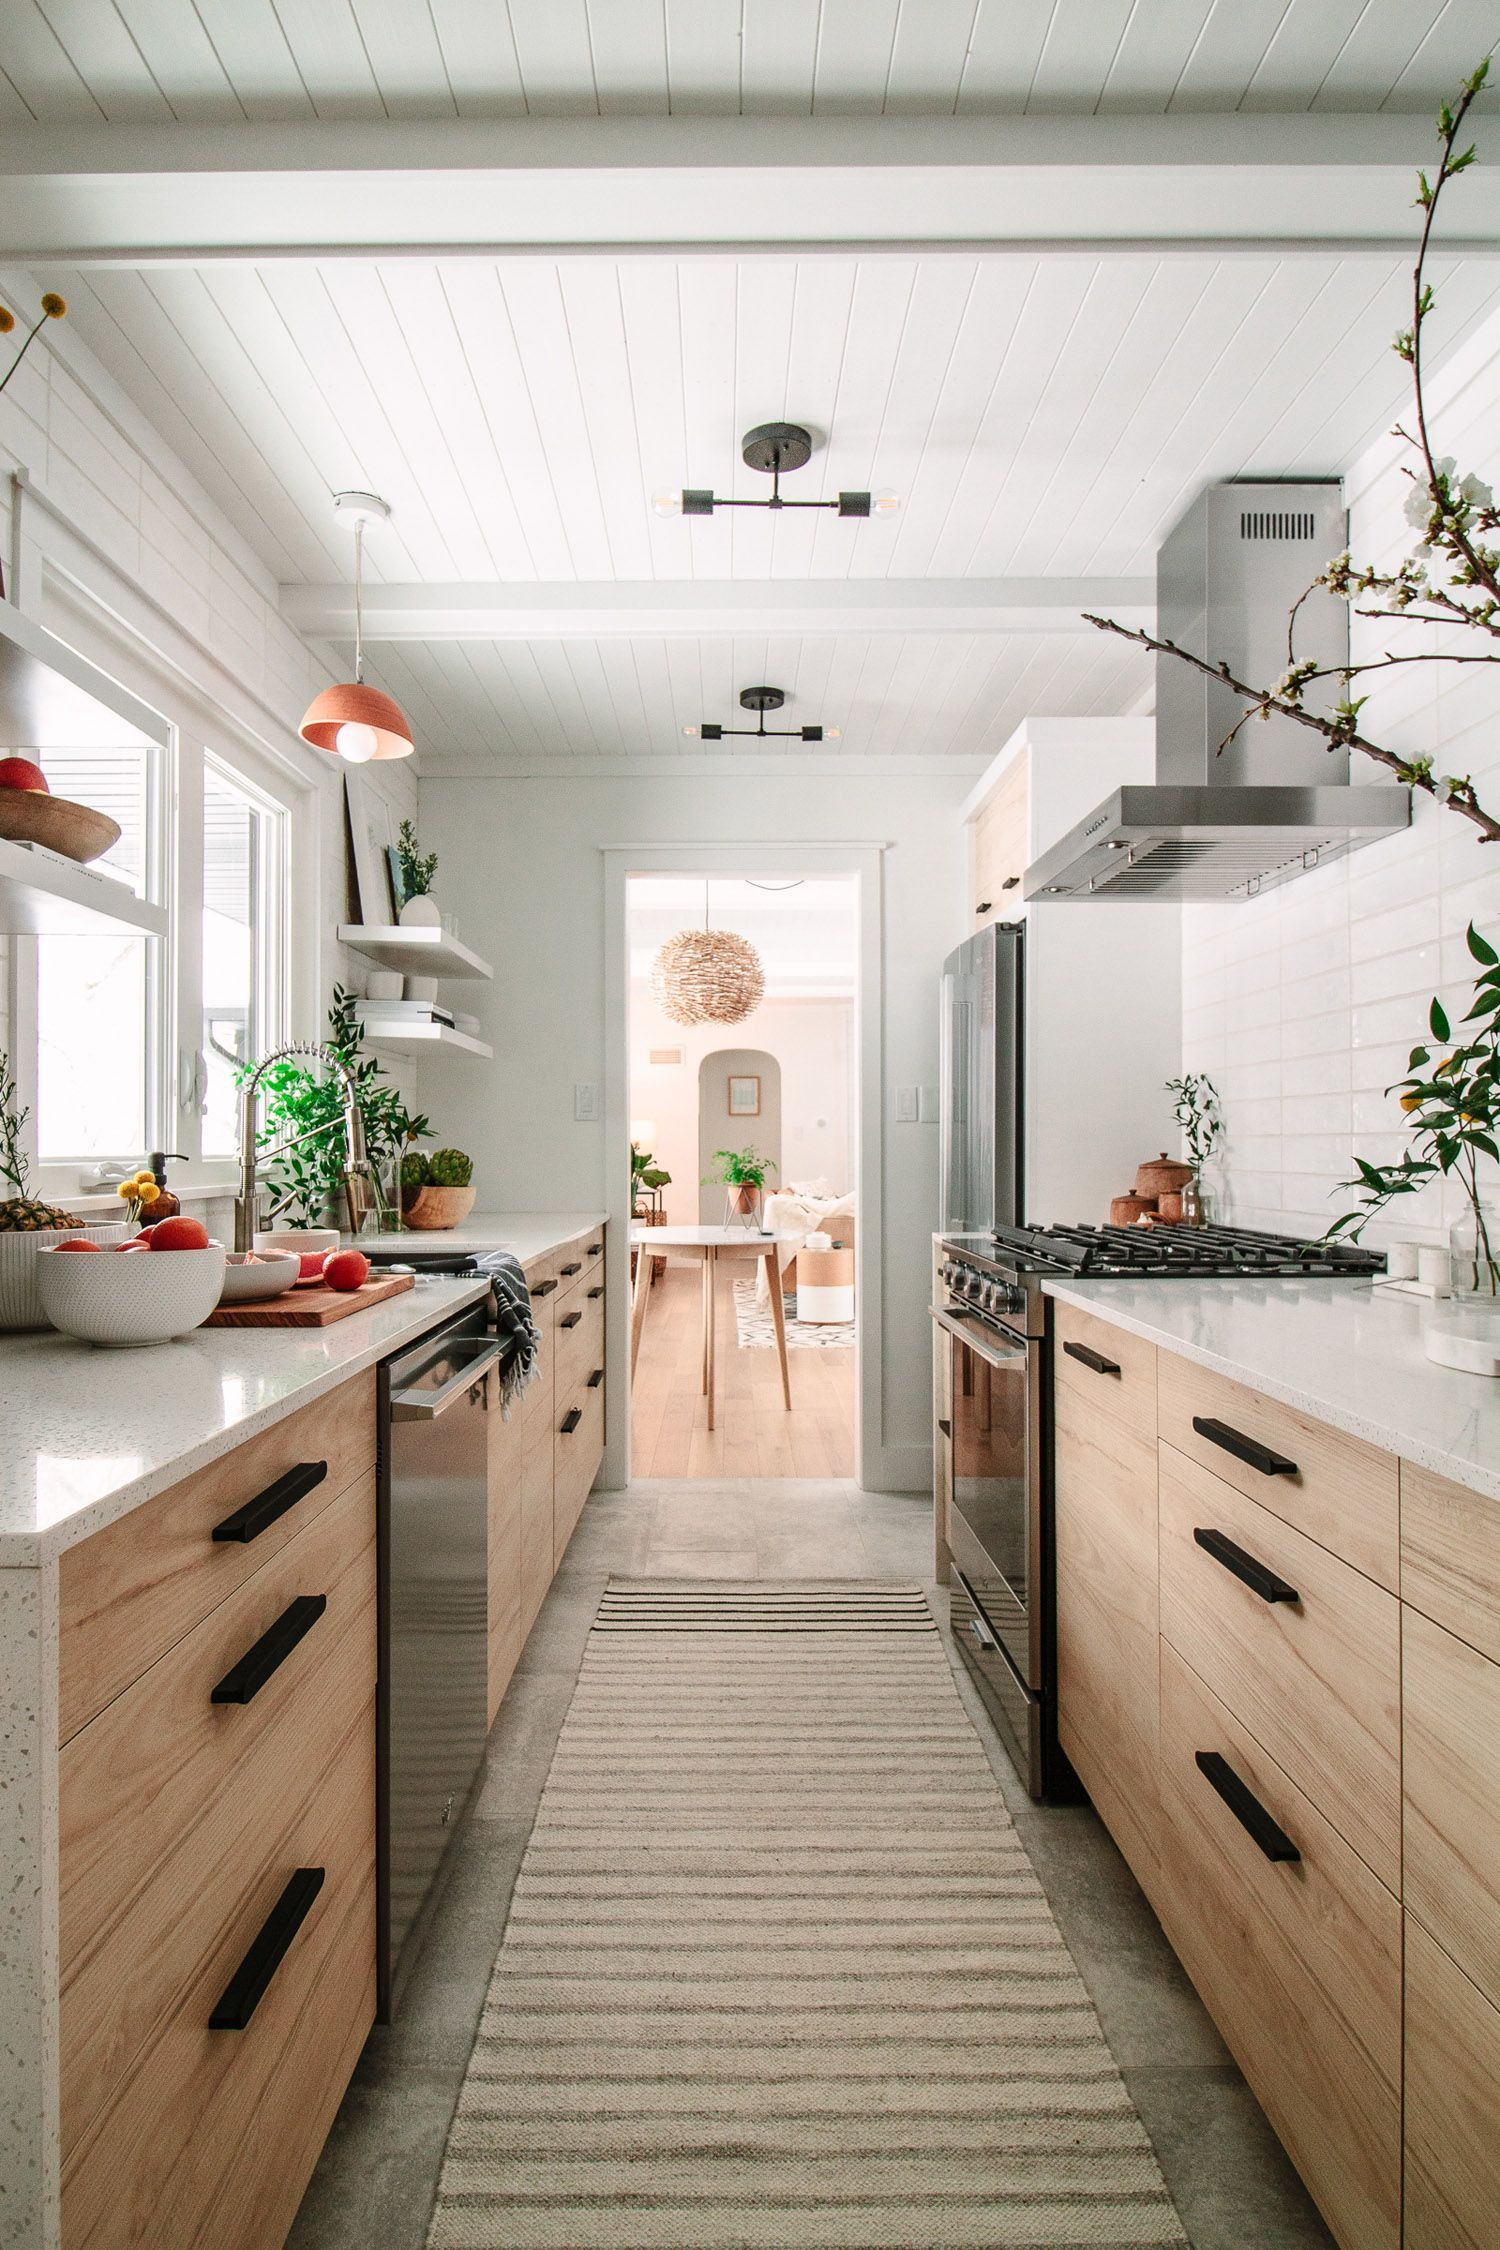 Galley Kitchen Design Ideas That Live Large in 2020 ...